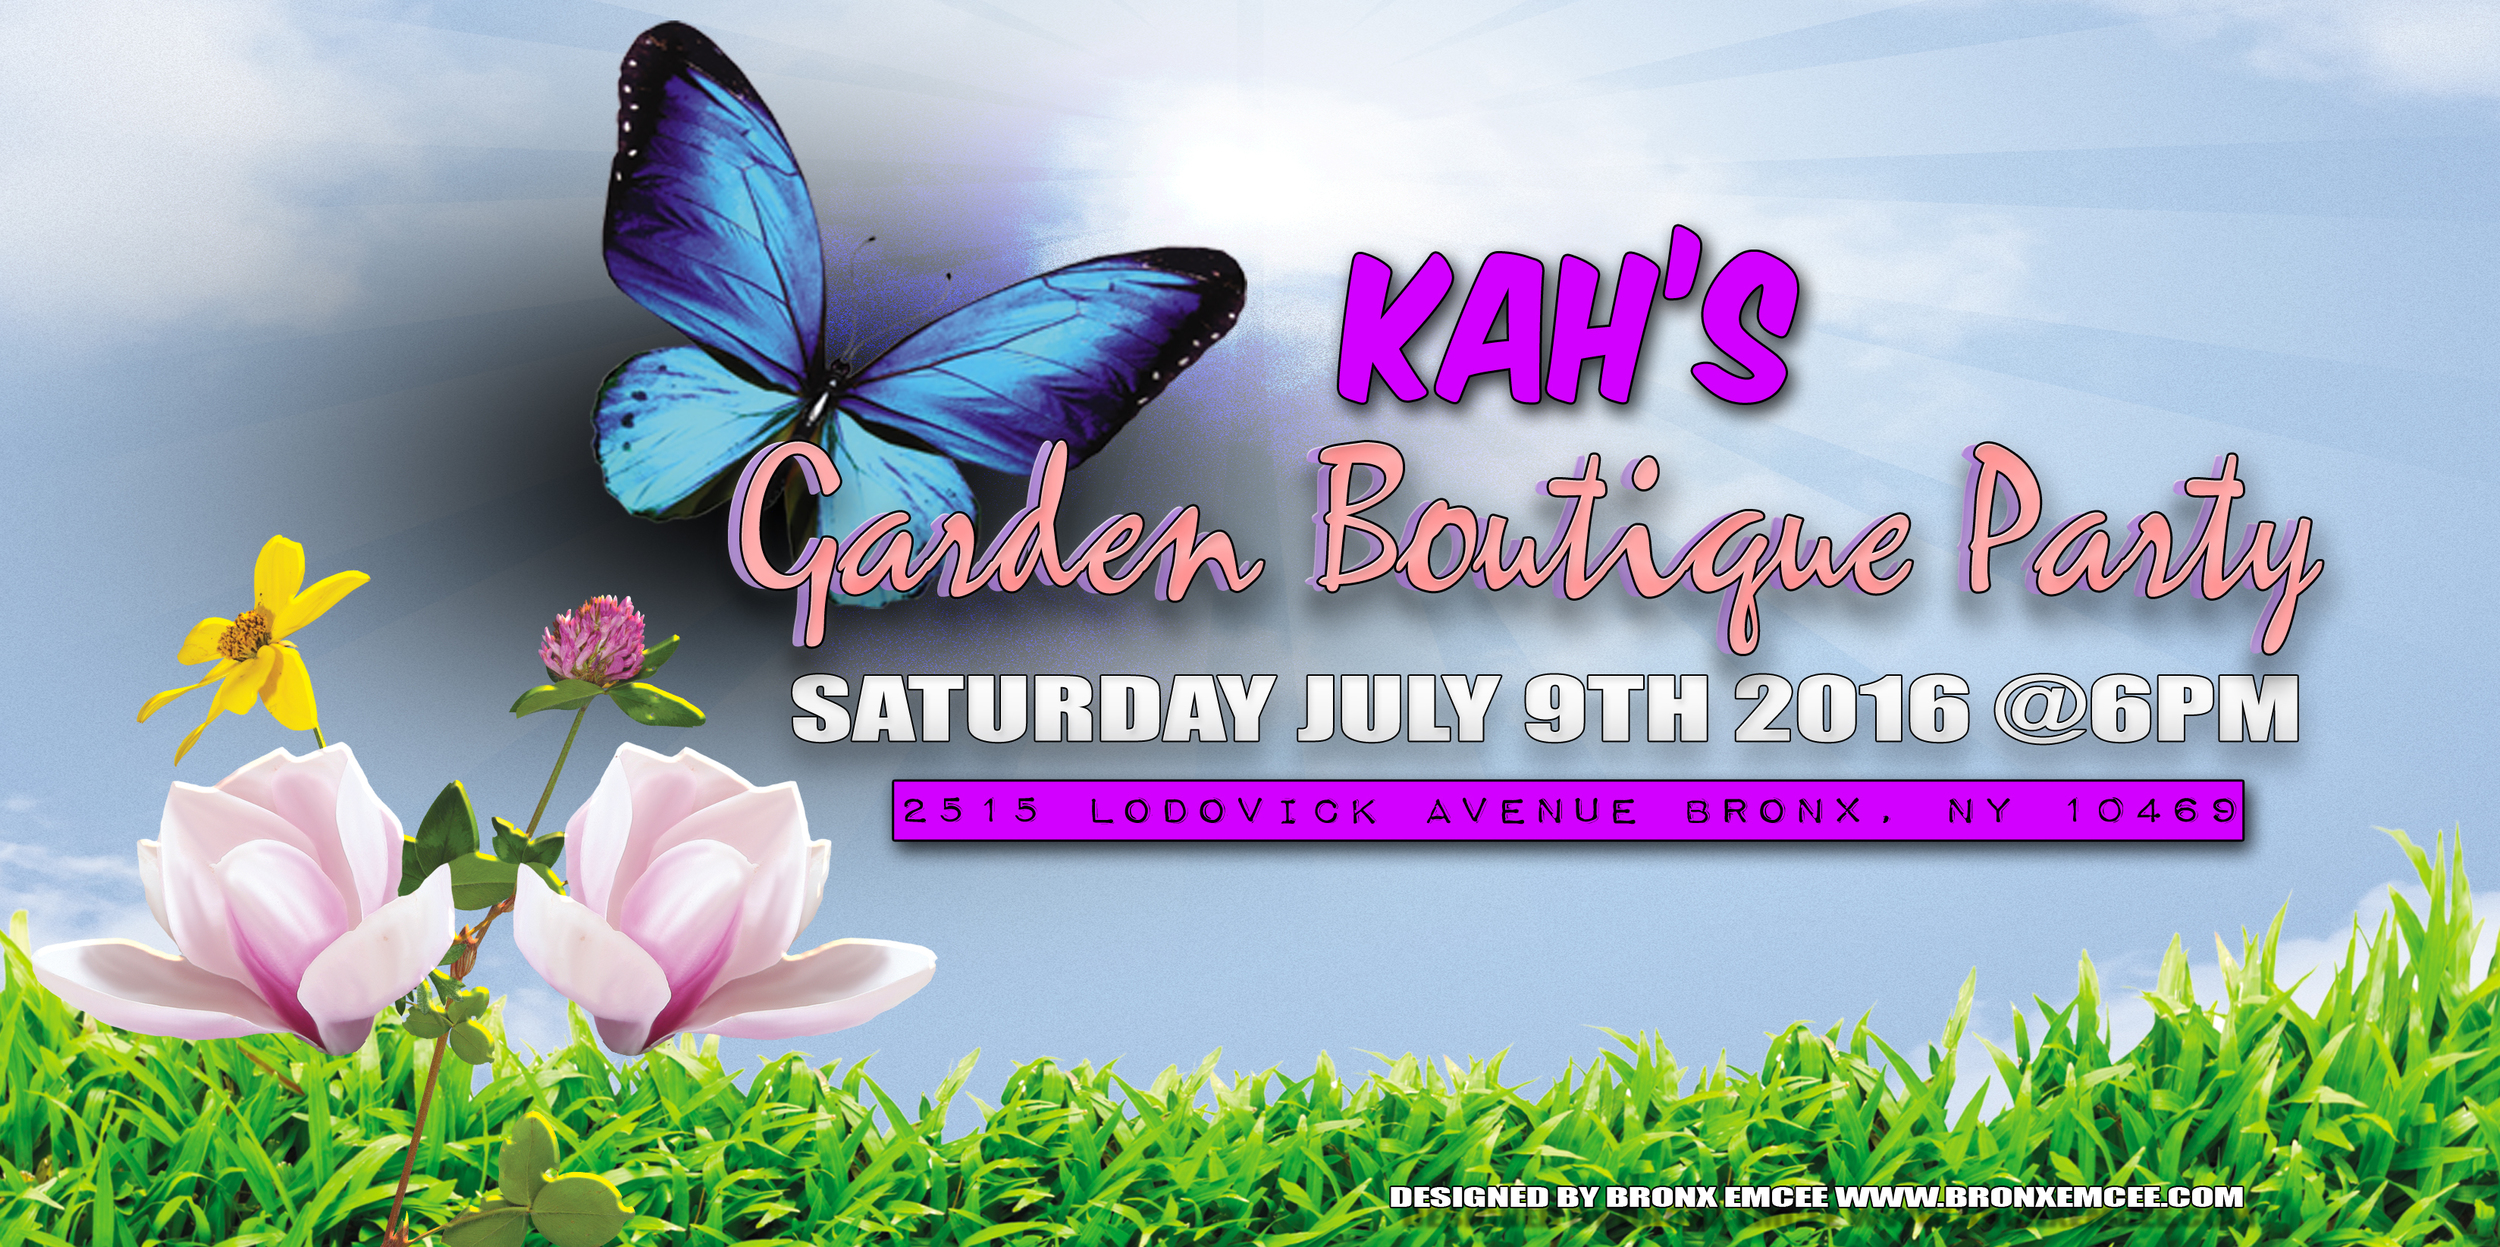 KAH's Garden Boutique Party Facebook Event Banner 3.jpg